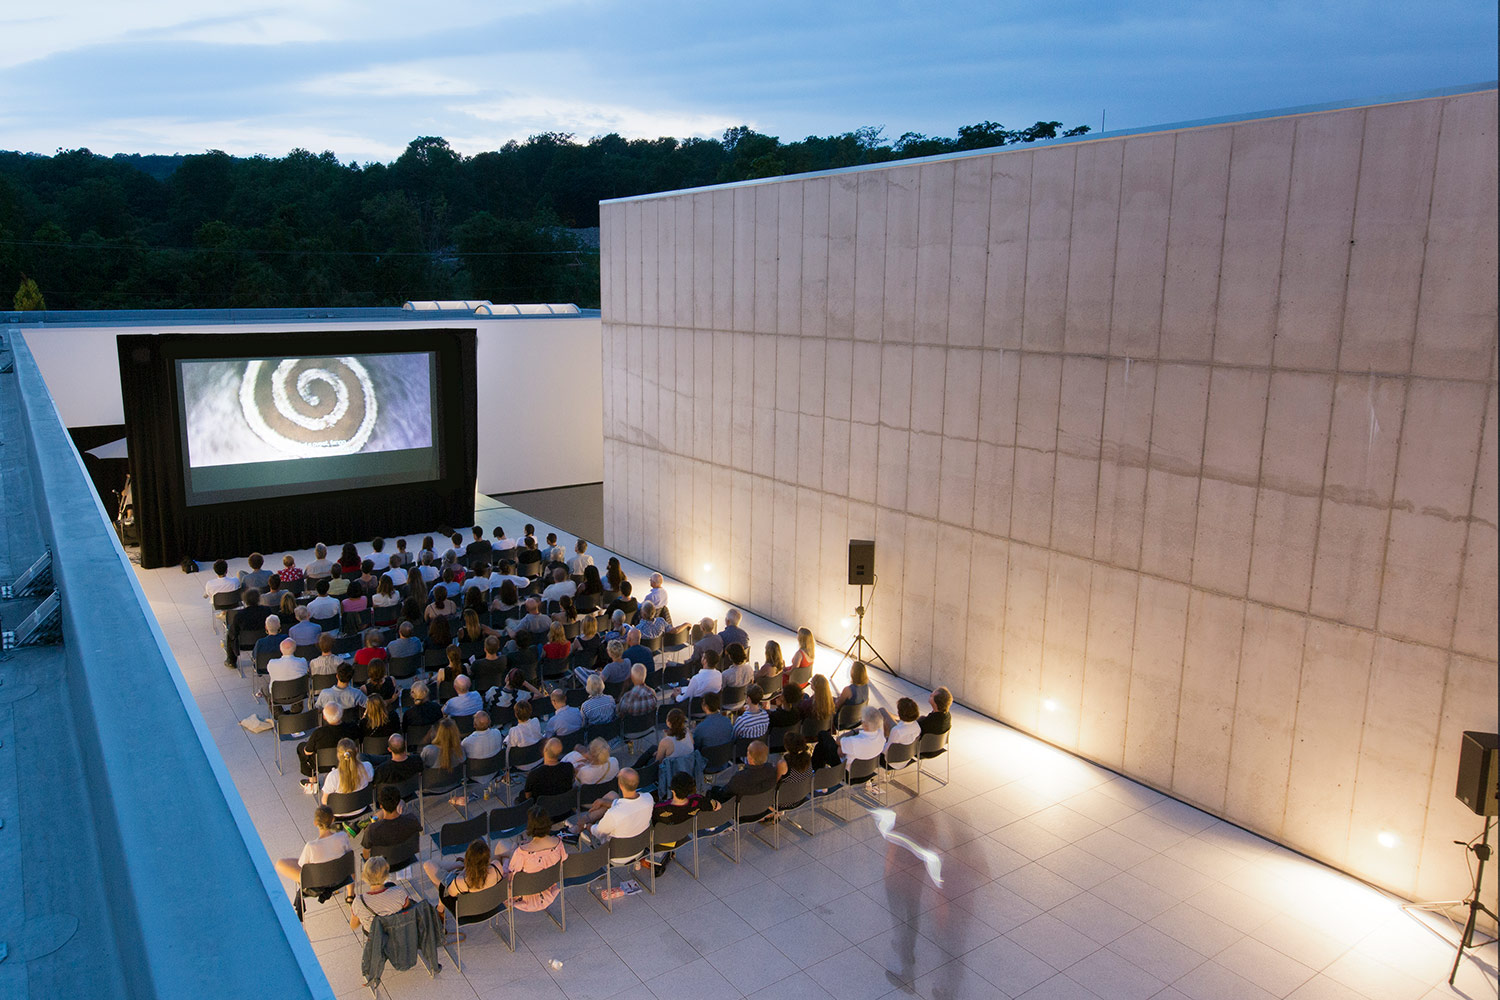 Art-collectors Nancy Olnick and Giorgio Spanu needed expert acousticians for their Magazzino Italian Art collection museum screenings in NY, they engaged WSDG to recommend and integrate a comprehensive equipment package. Roof Viewing to Cinema 2.